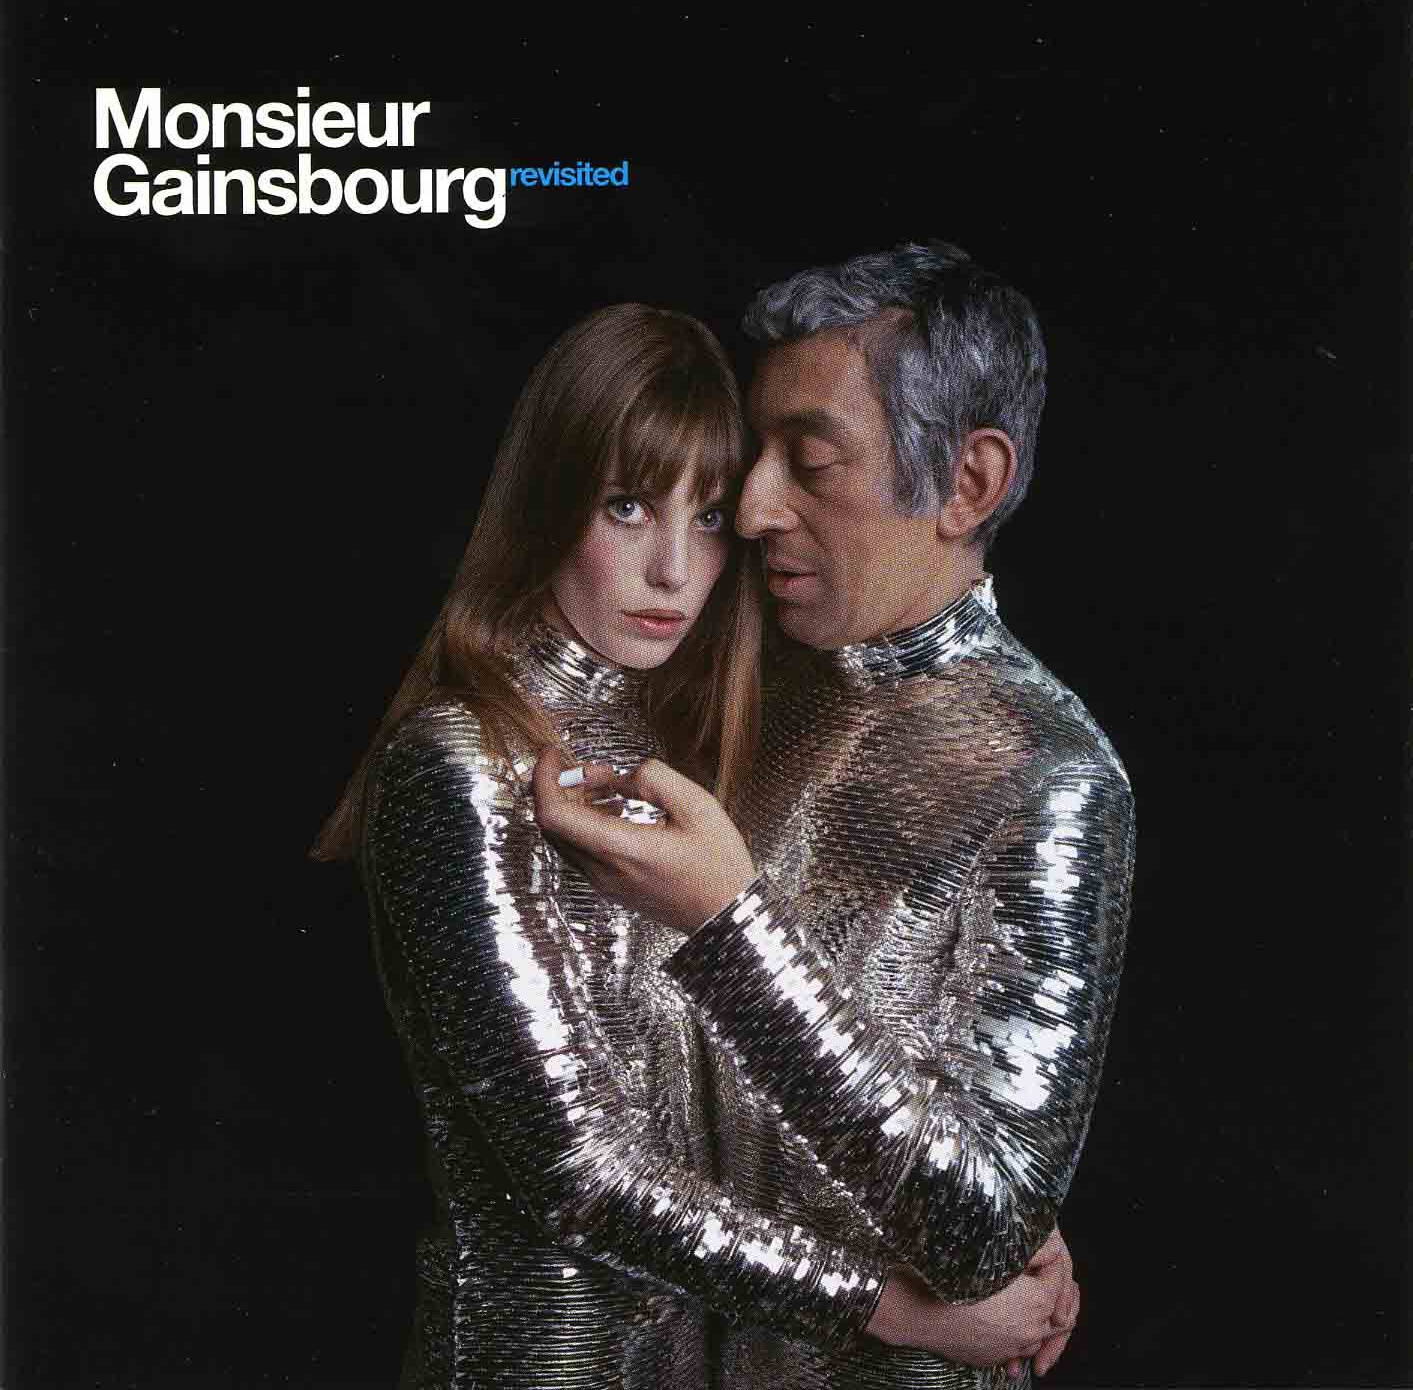 http://4.bp.blogspot.com/_b2g8xzu9jqY/TRNyKcwlqcI/AAAAAAAAAD0/Nryqf1rs1BA/s1600/A_Tribute_To_Serge_Gainsbourg_-_Monsieur_Gainsbourg_Revisited_-_Front.jpg